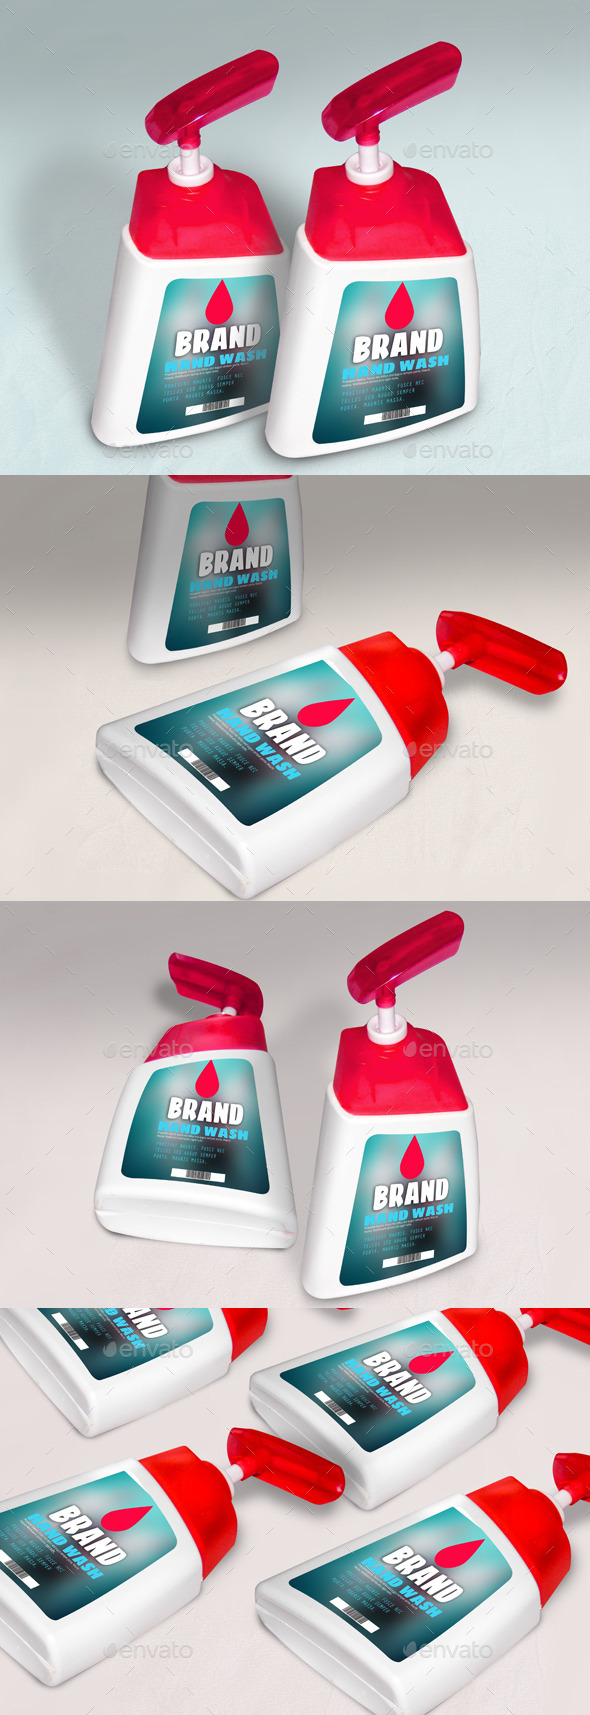 Hand Wash Container Mock-up - Miscellaneous Packaging